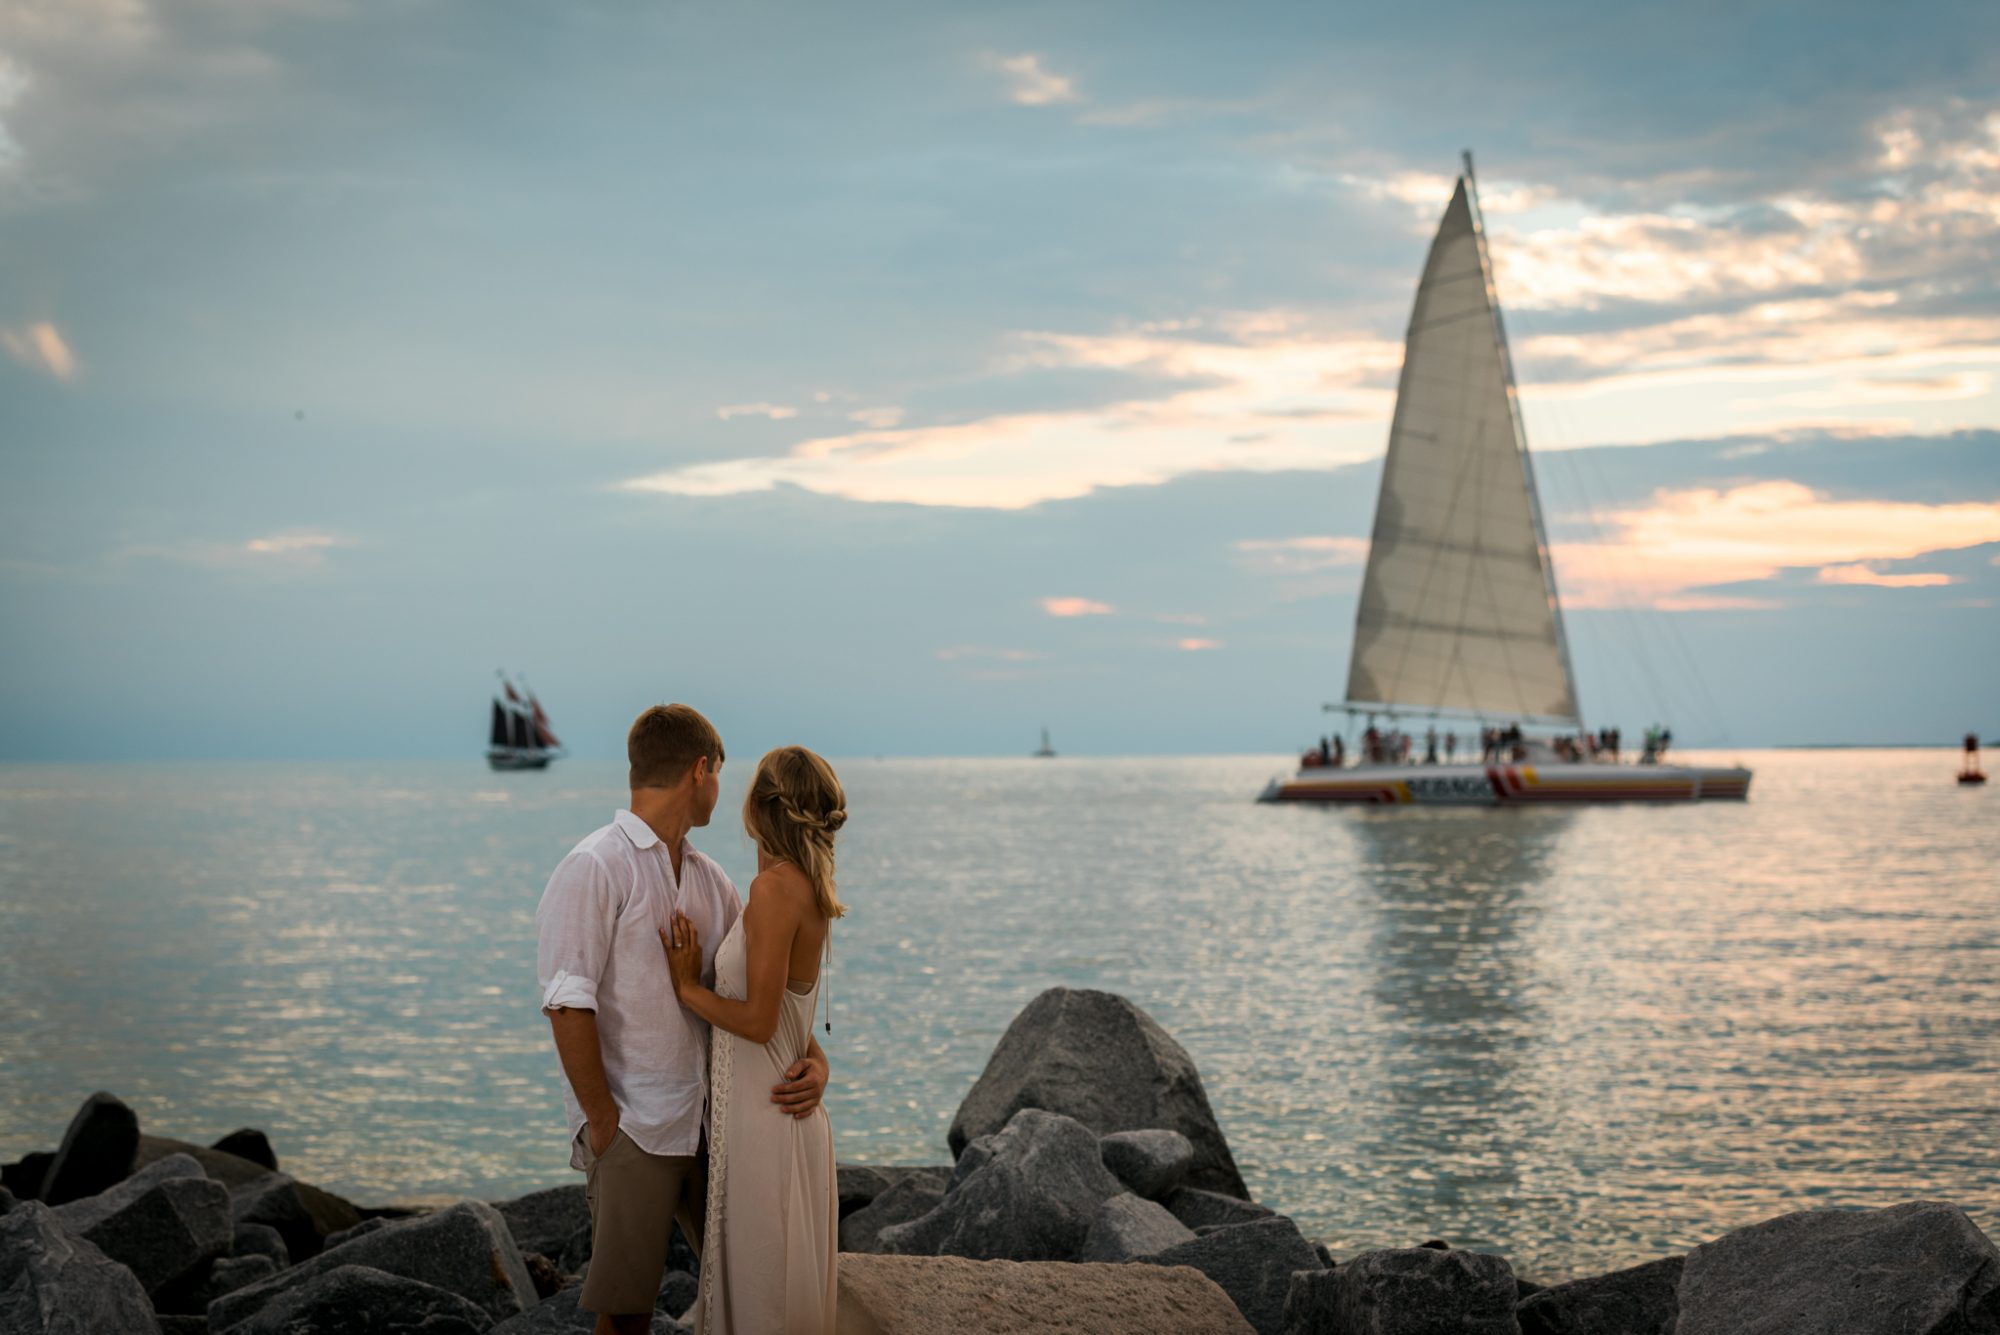 Shelby Jake Engagement Photos 48 - Shelby & Jake - Key West Wedding Photographer - Fort Zachary Taylor